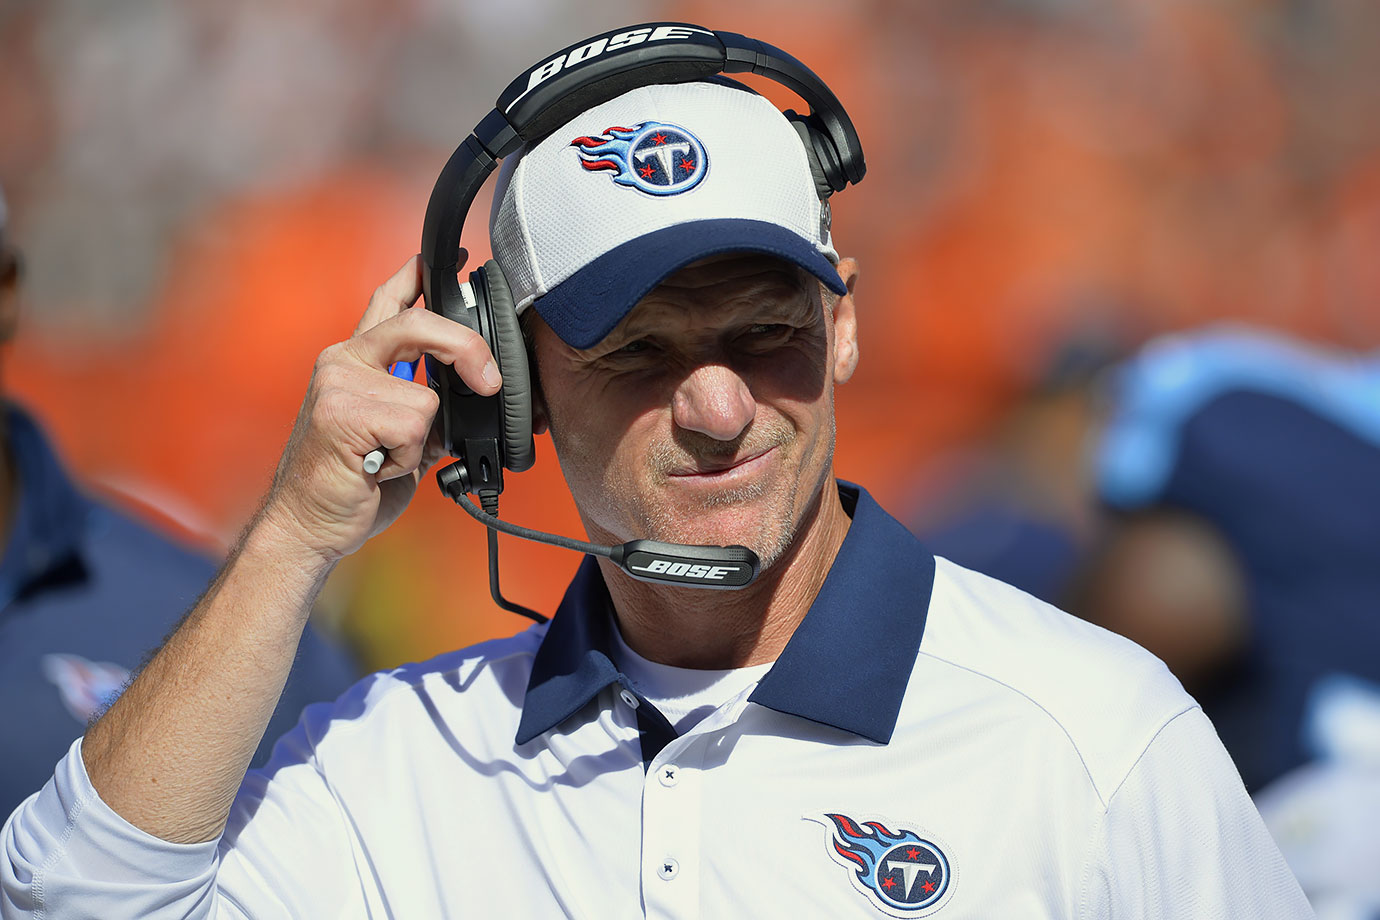 In two years as the Titans' coach, Whisenhunt led the team to a 3–20 record. This season, Tennessee had only one win through seven games and had not won since the season opener against the Tampa Bay Buccaneers when they fired their head coach. Whisenhunt signed a five-year contract with Tennessee in January 2014, but his deal was short as he was replaced by assistant coach Mike Mularkey.